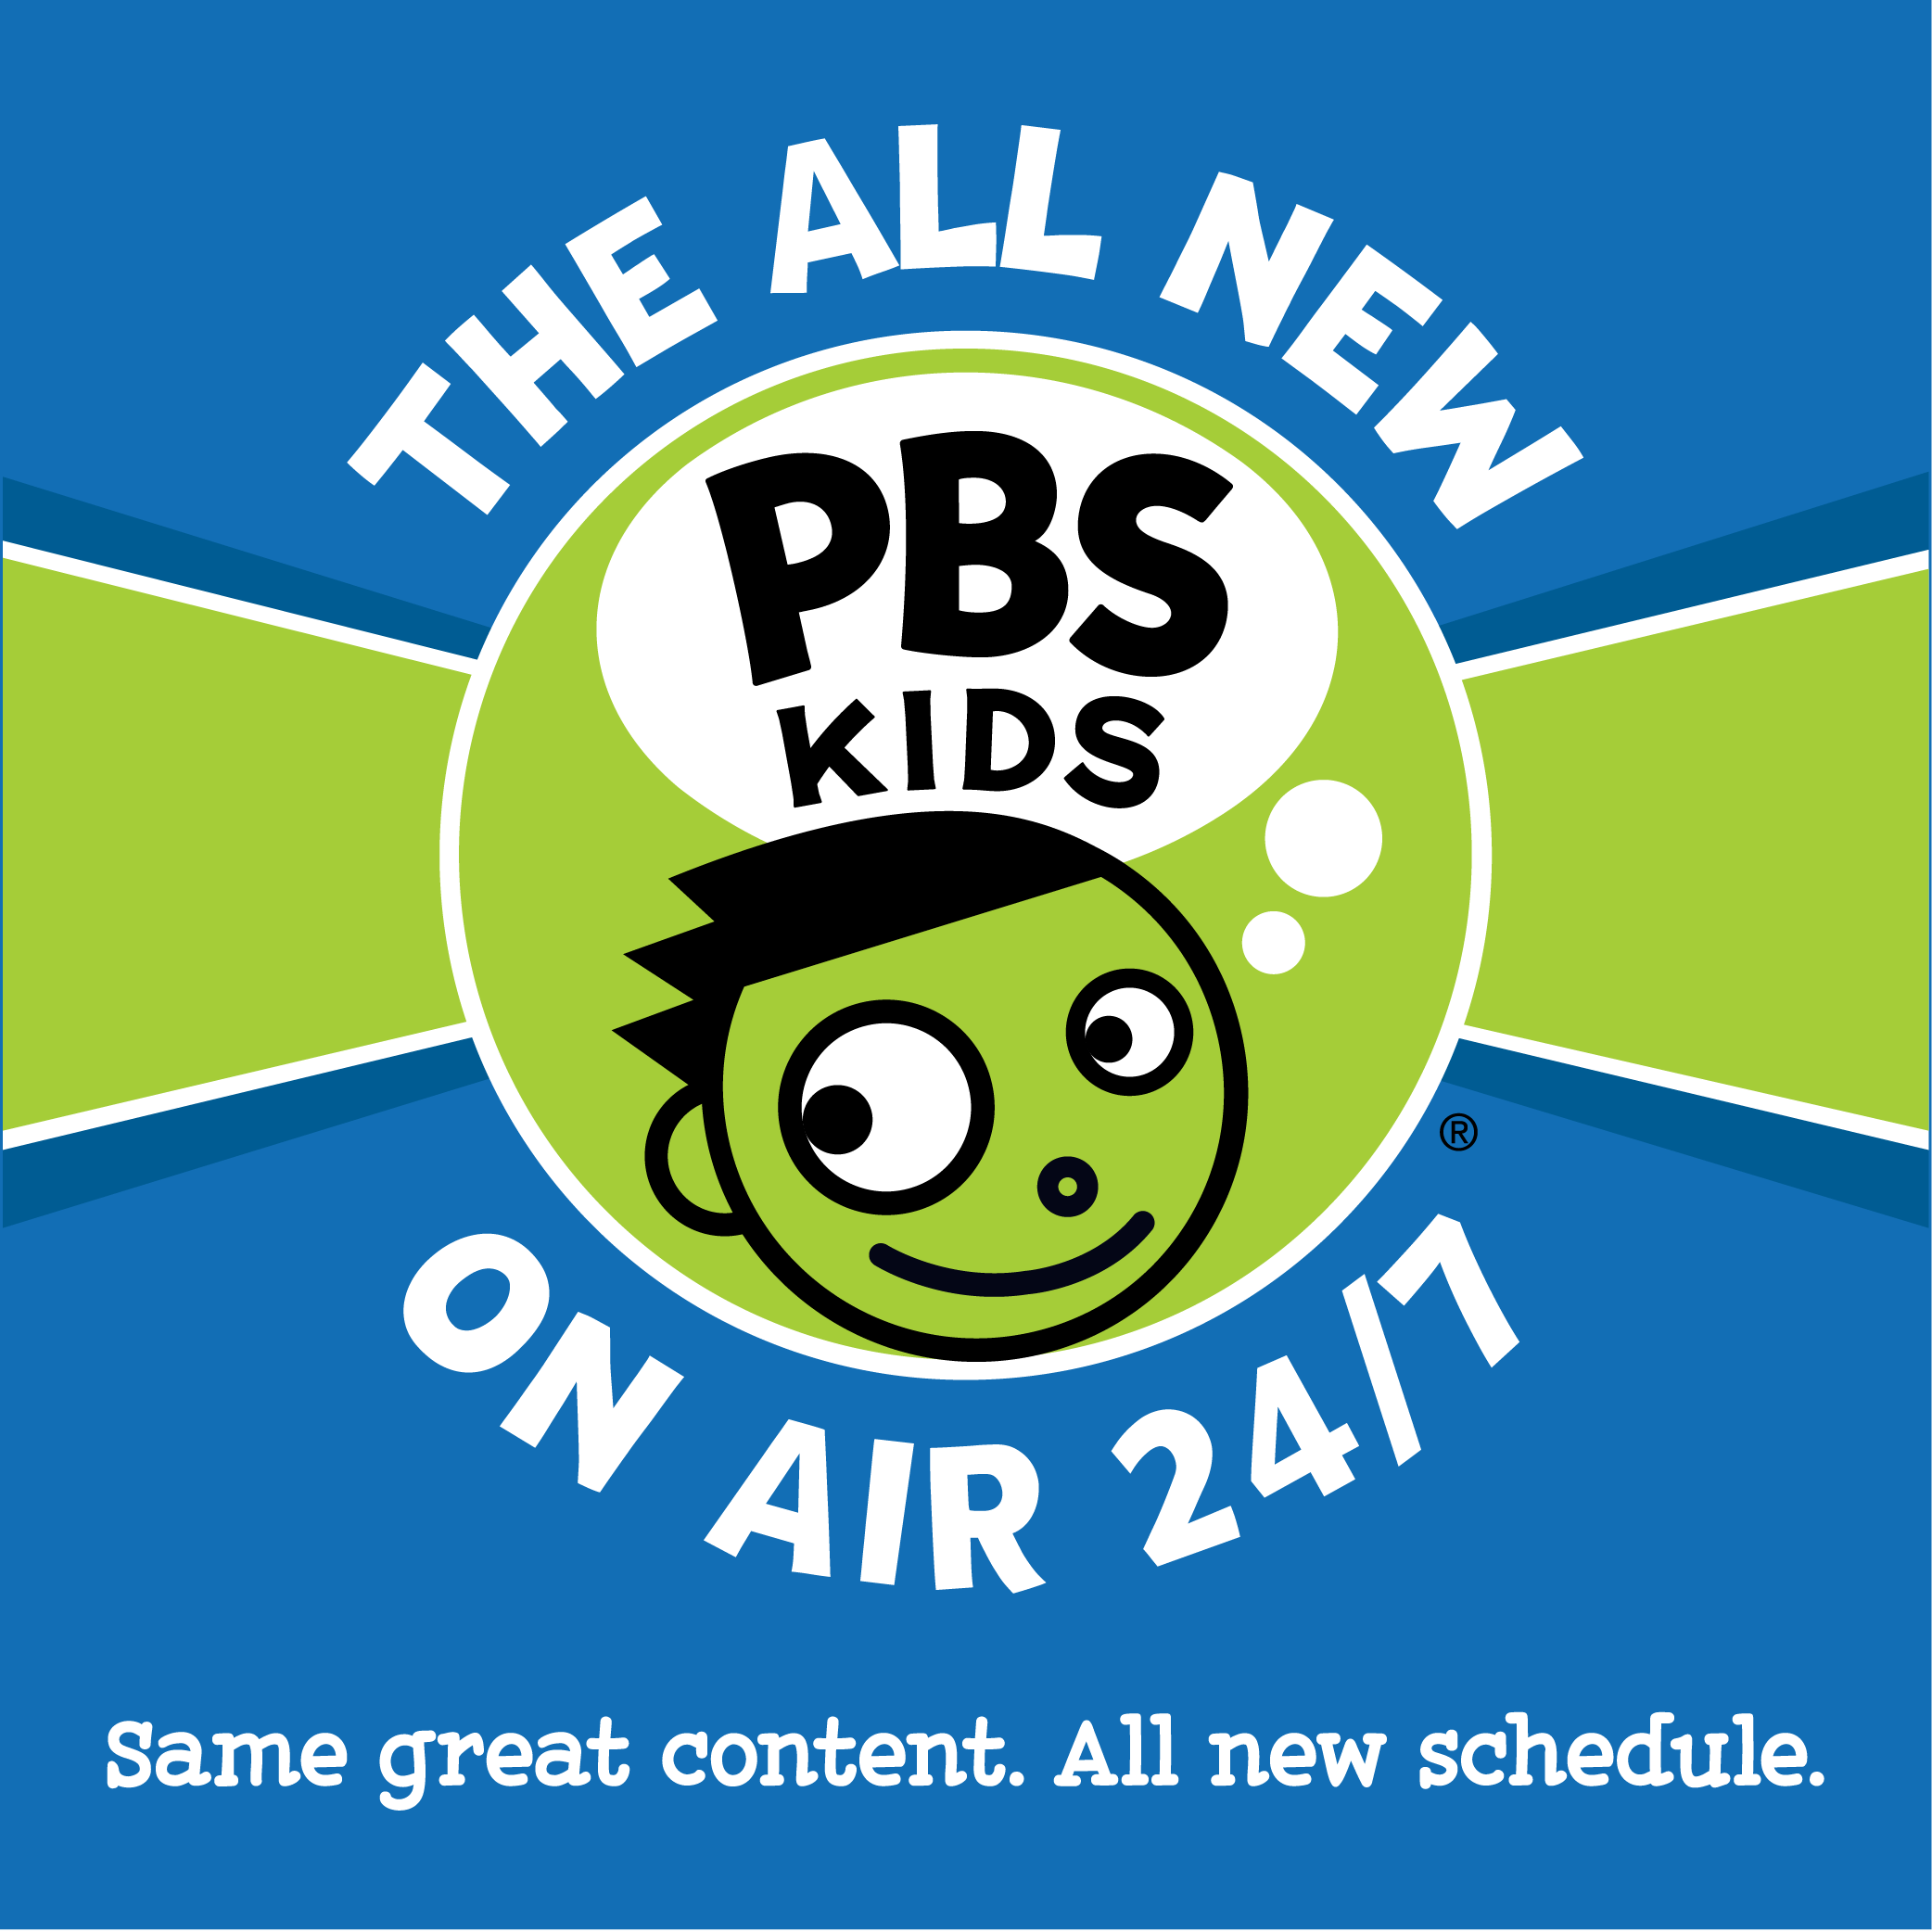 PBS KIDS debut ad